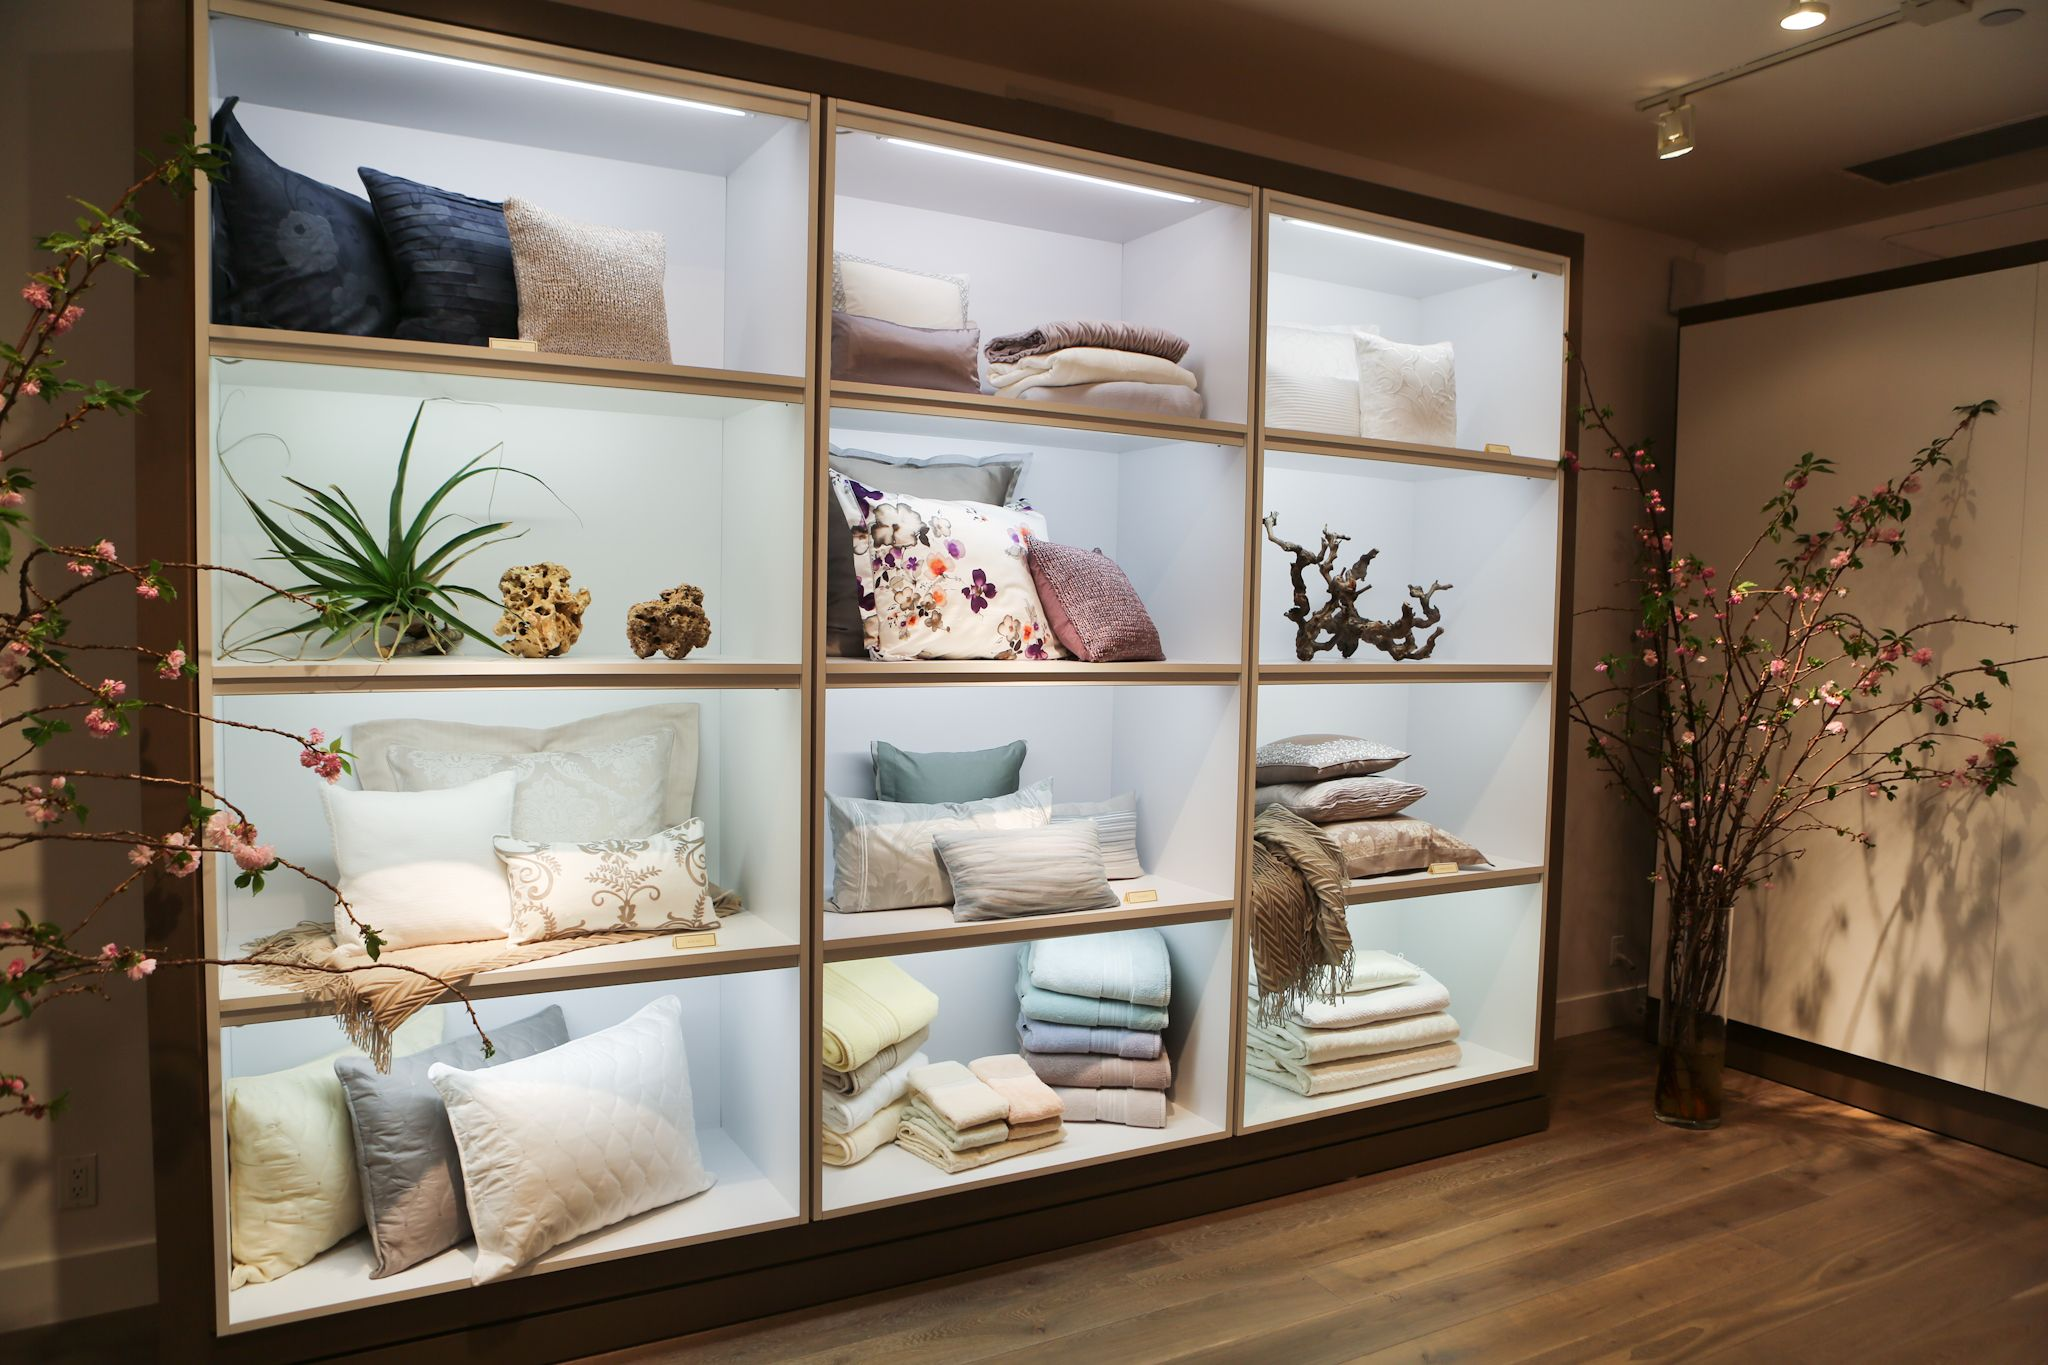 Fashion Showrooms Textile Google Search Store Interiors Room